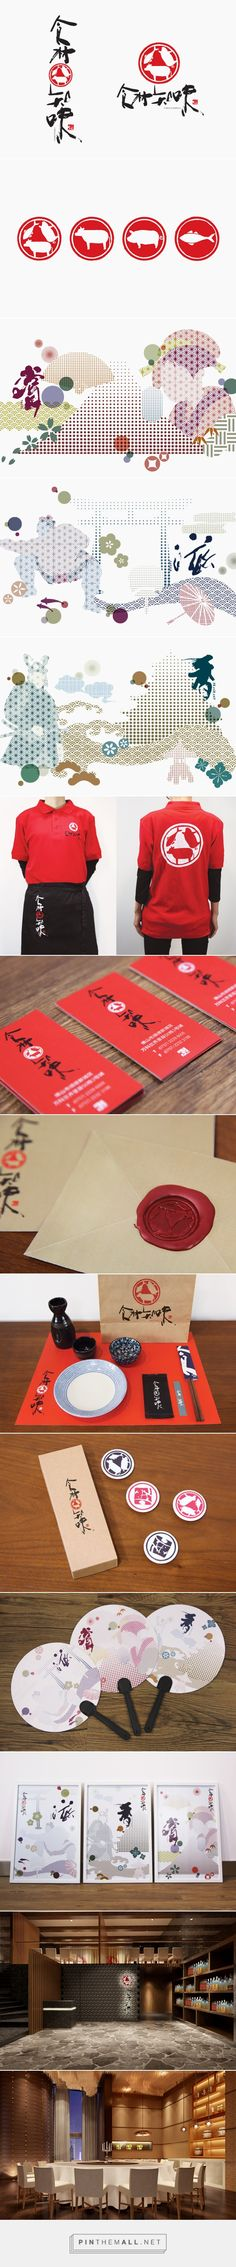 Chillsdeli Japanese BBQ Restaurant packaging branding on Behance by Box Brand Design curated by Packaging Diva PD.